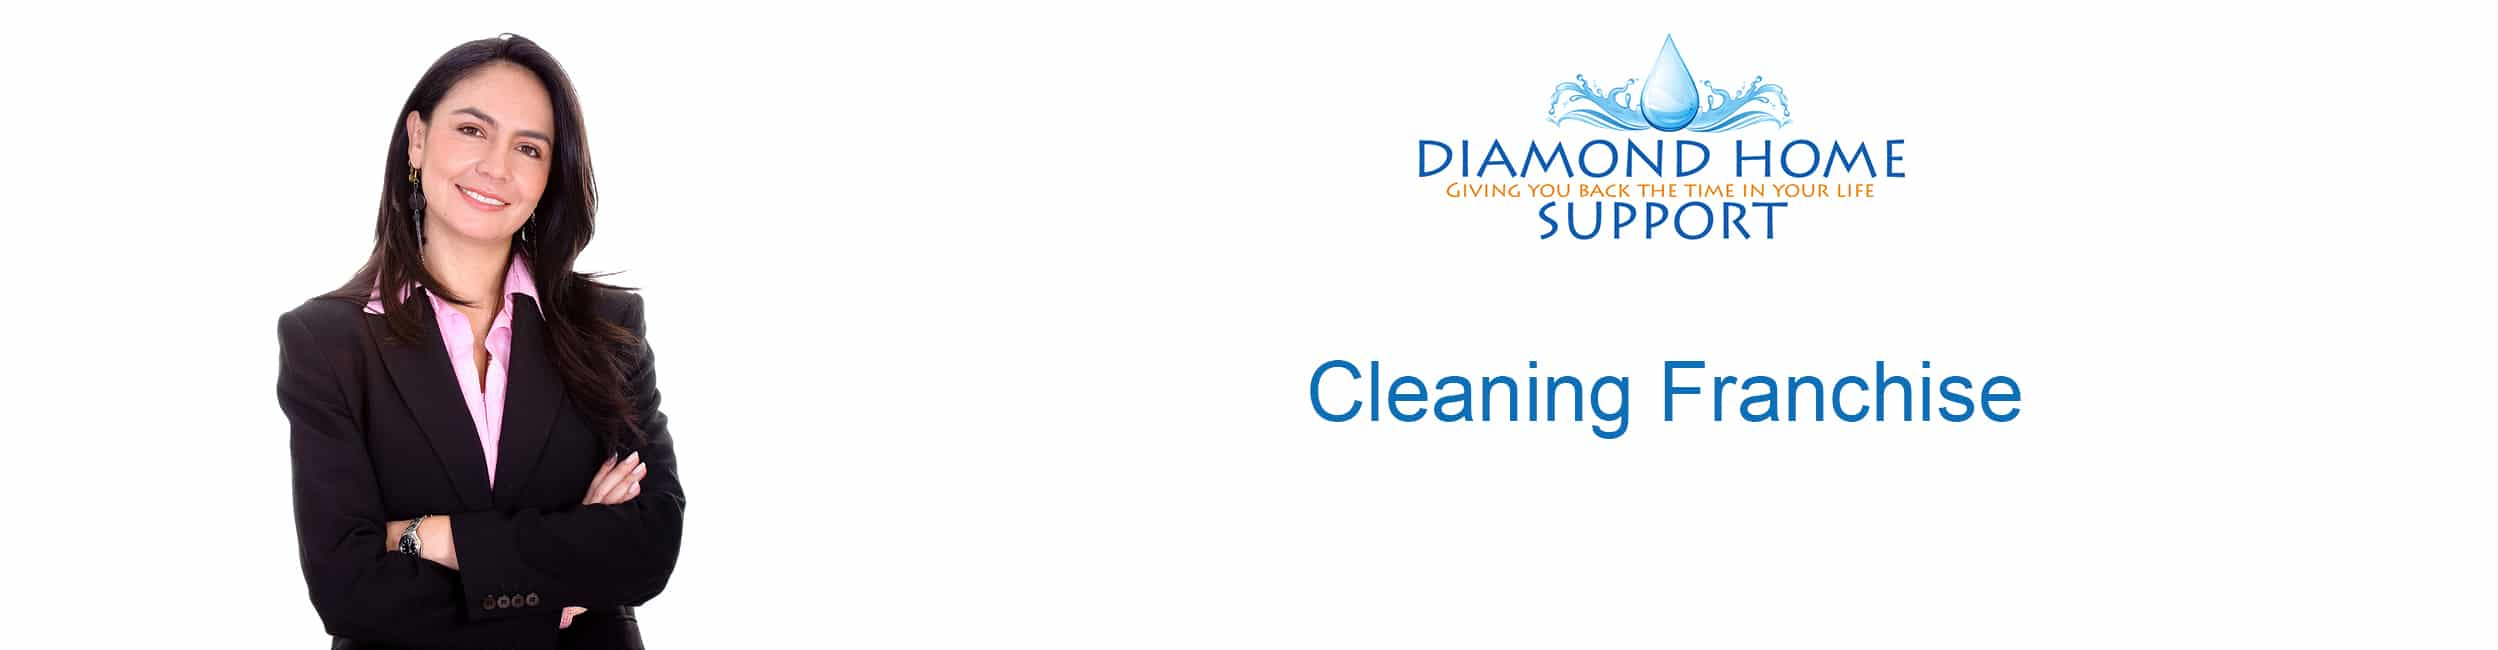 Diamond Home Support Domestic Cleaning Franchise Business Model